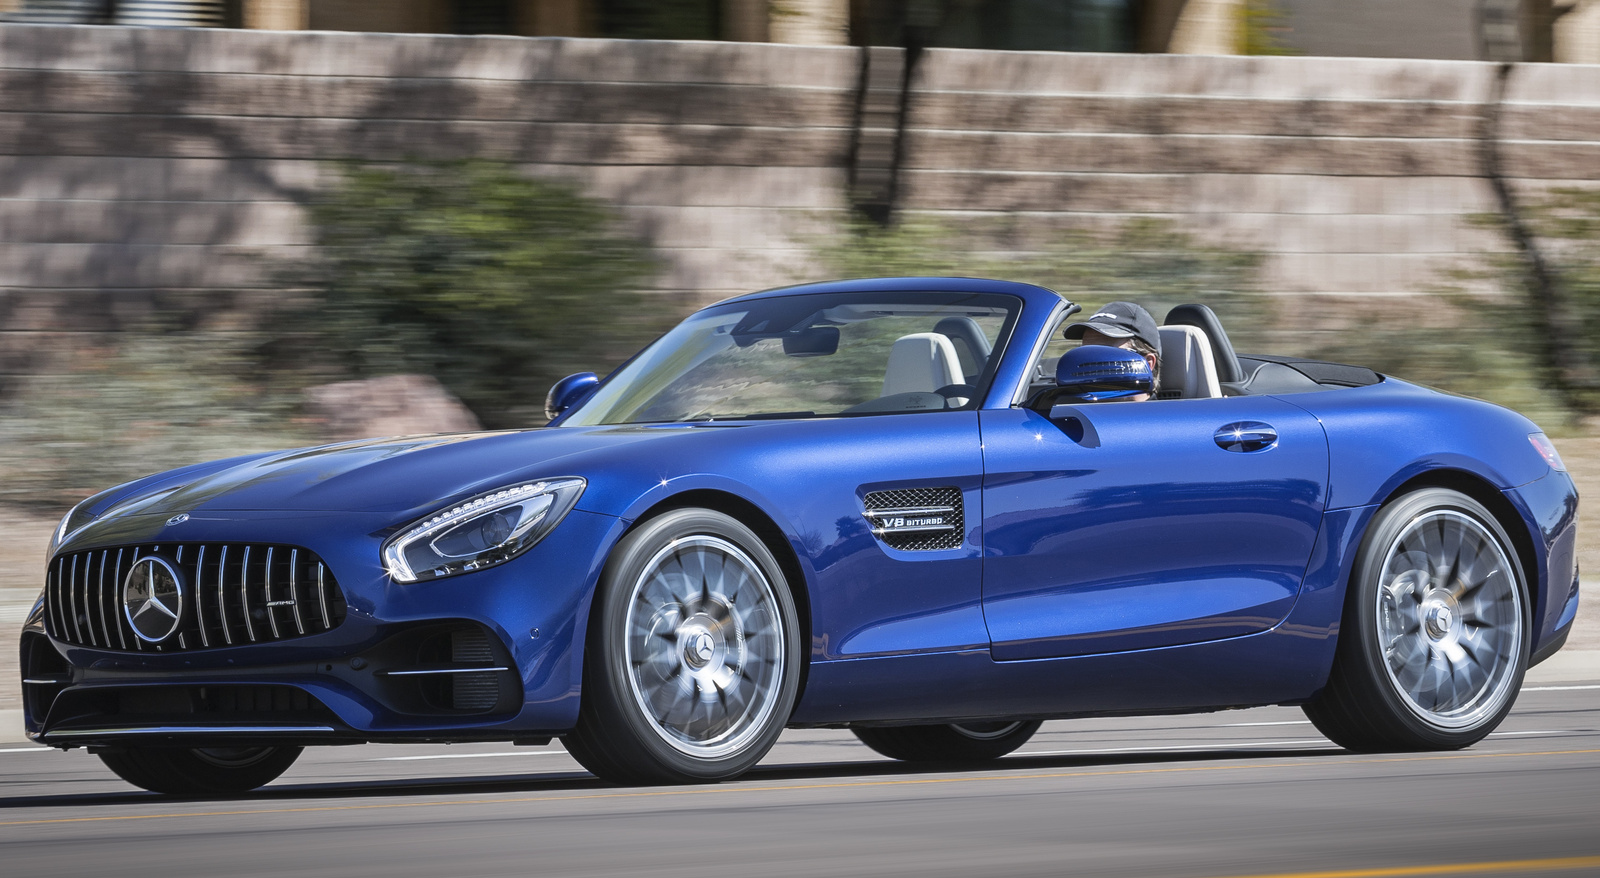 2017 2018 mercedes benz amg gt for sale in your area for 2017 mercedes benz gts amg price